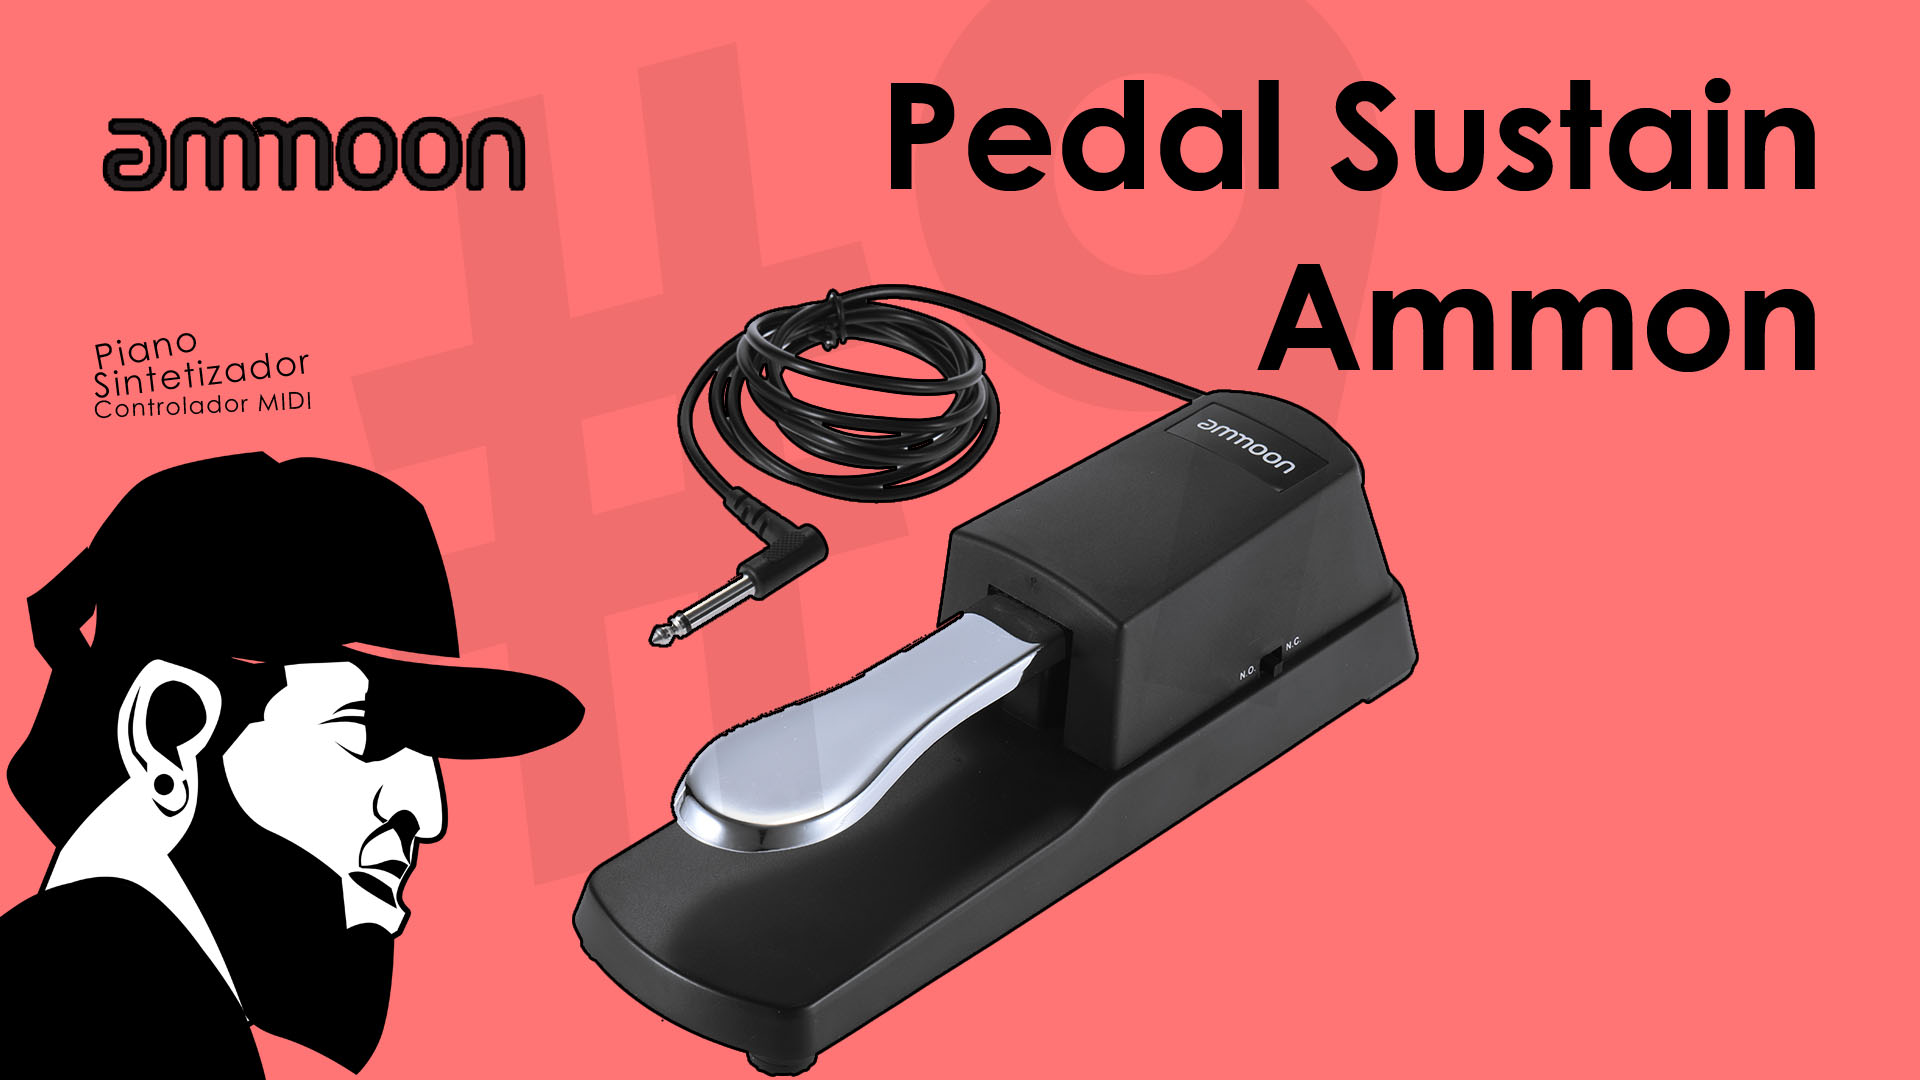 Teclado de Baixo Custo #9 – Review Pedal De Sustain Ammoon (Aliexpress)